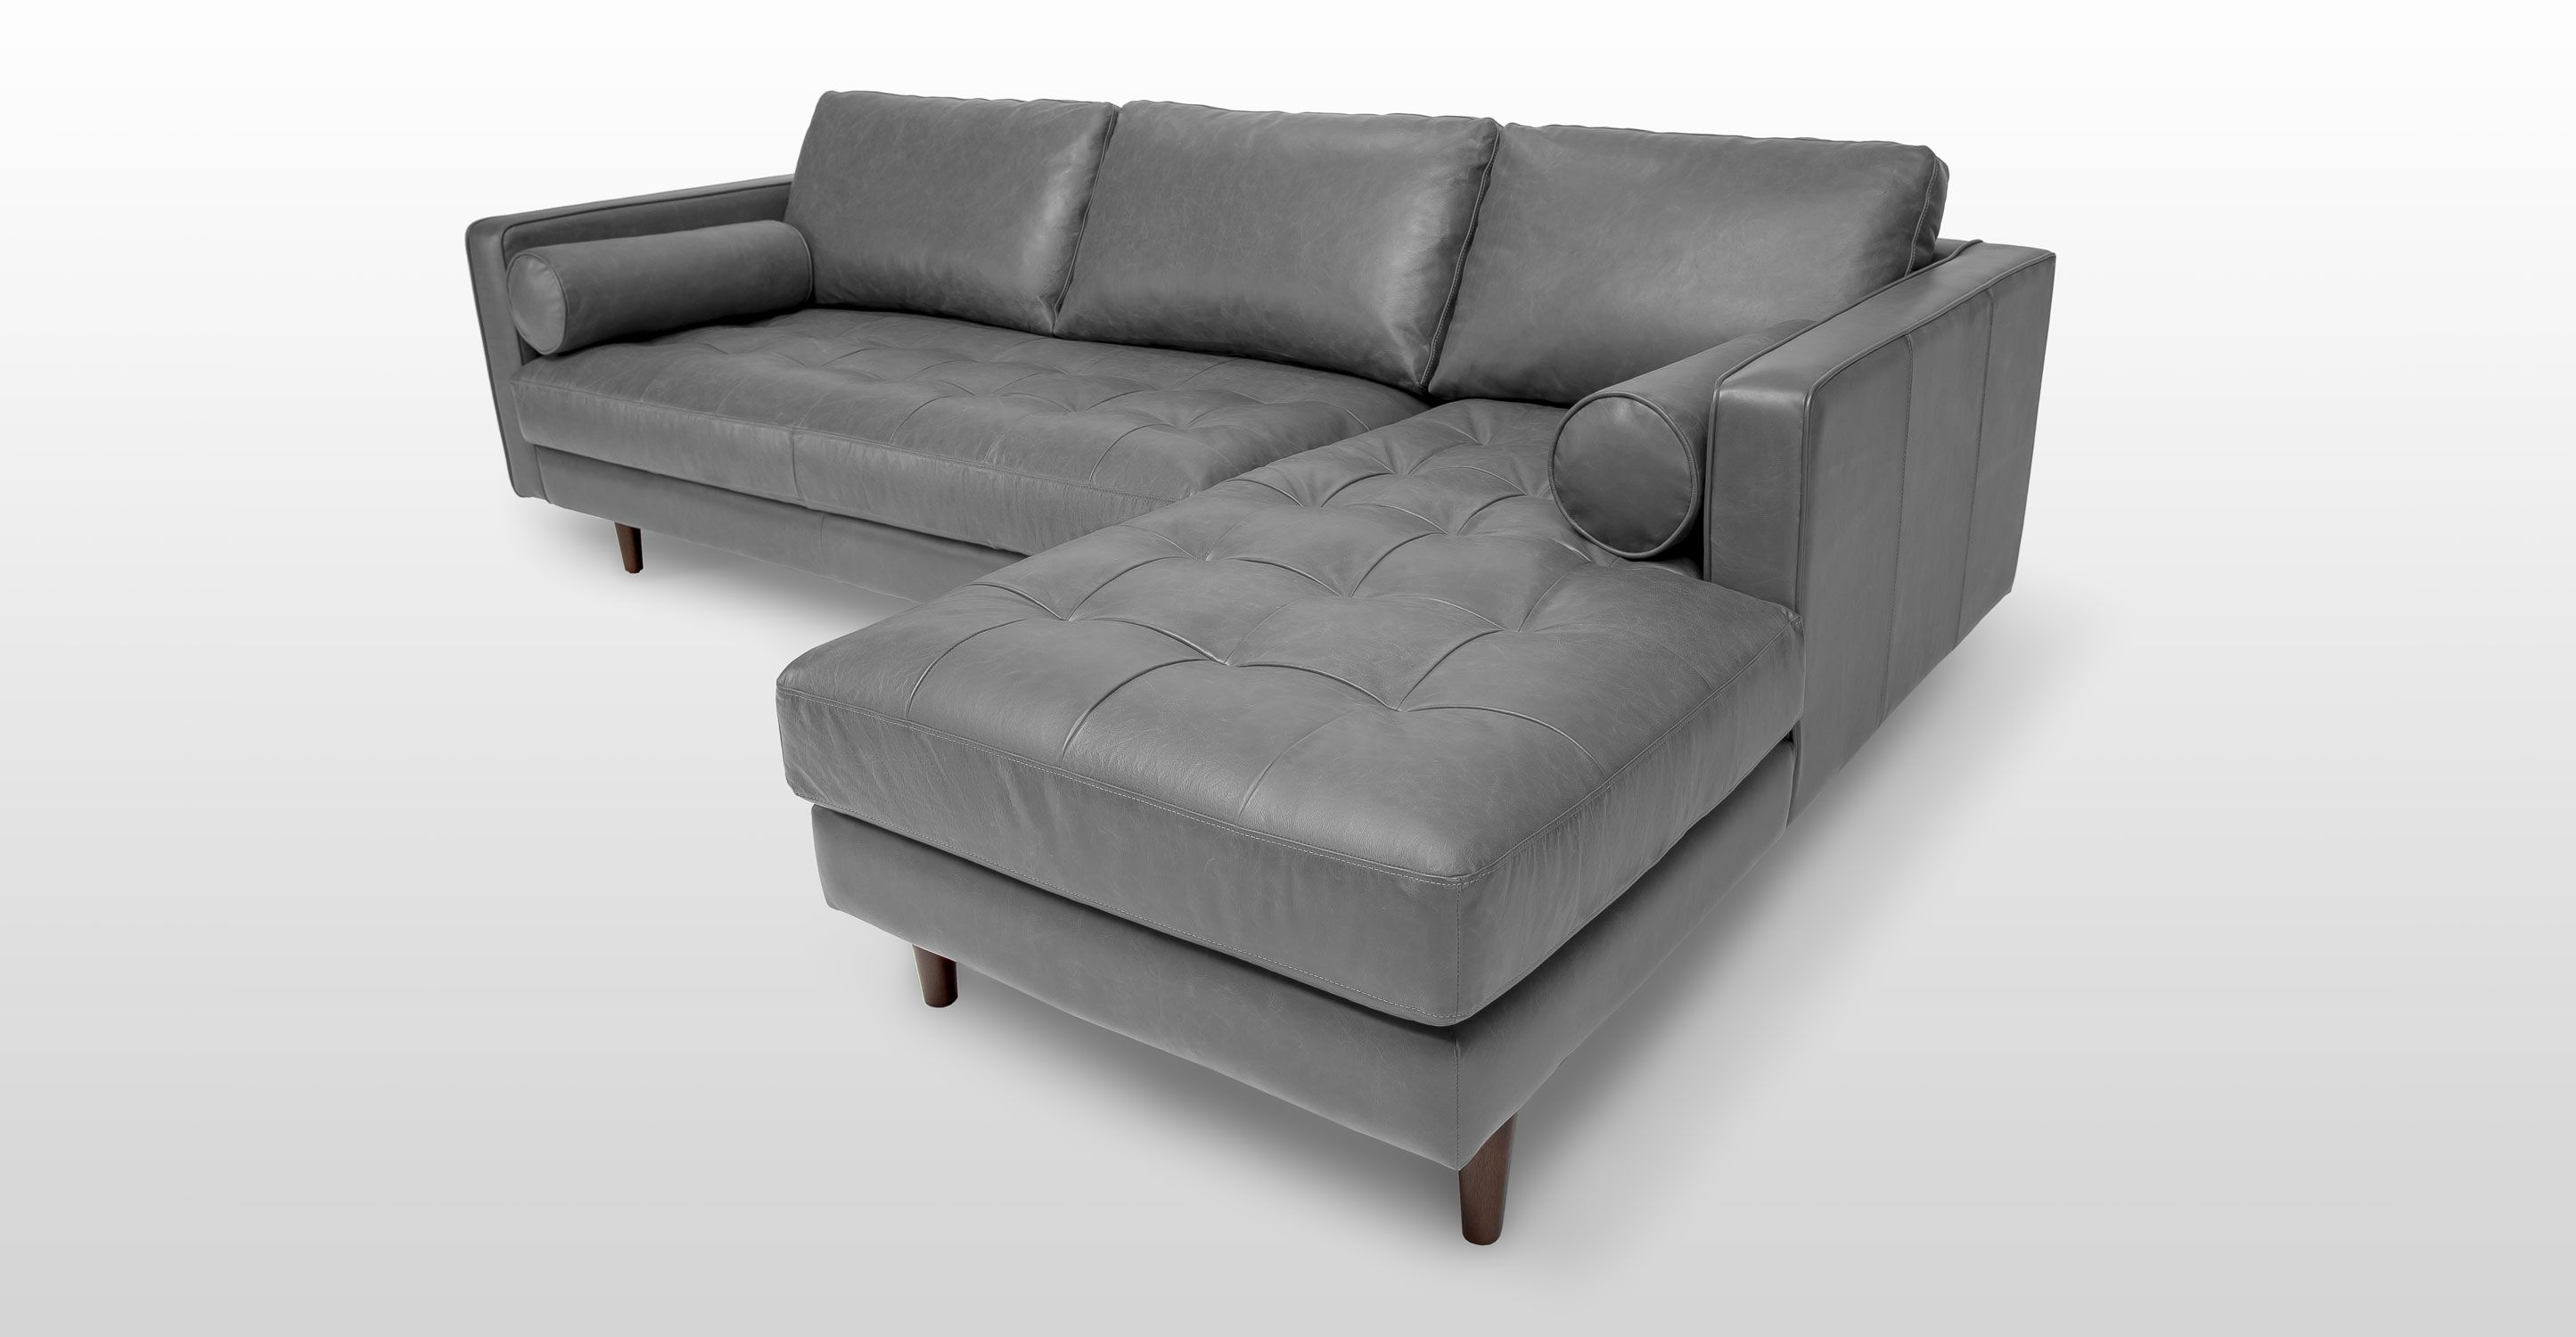 Gray Leather Sectional Sofa Upholstered